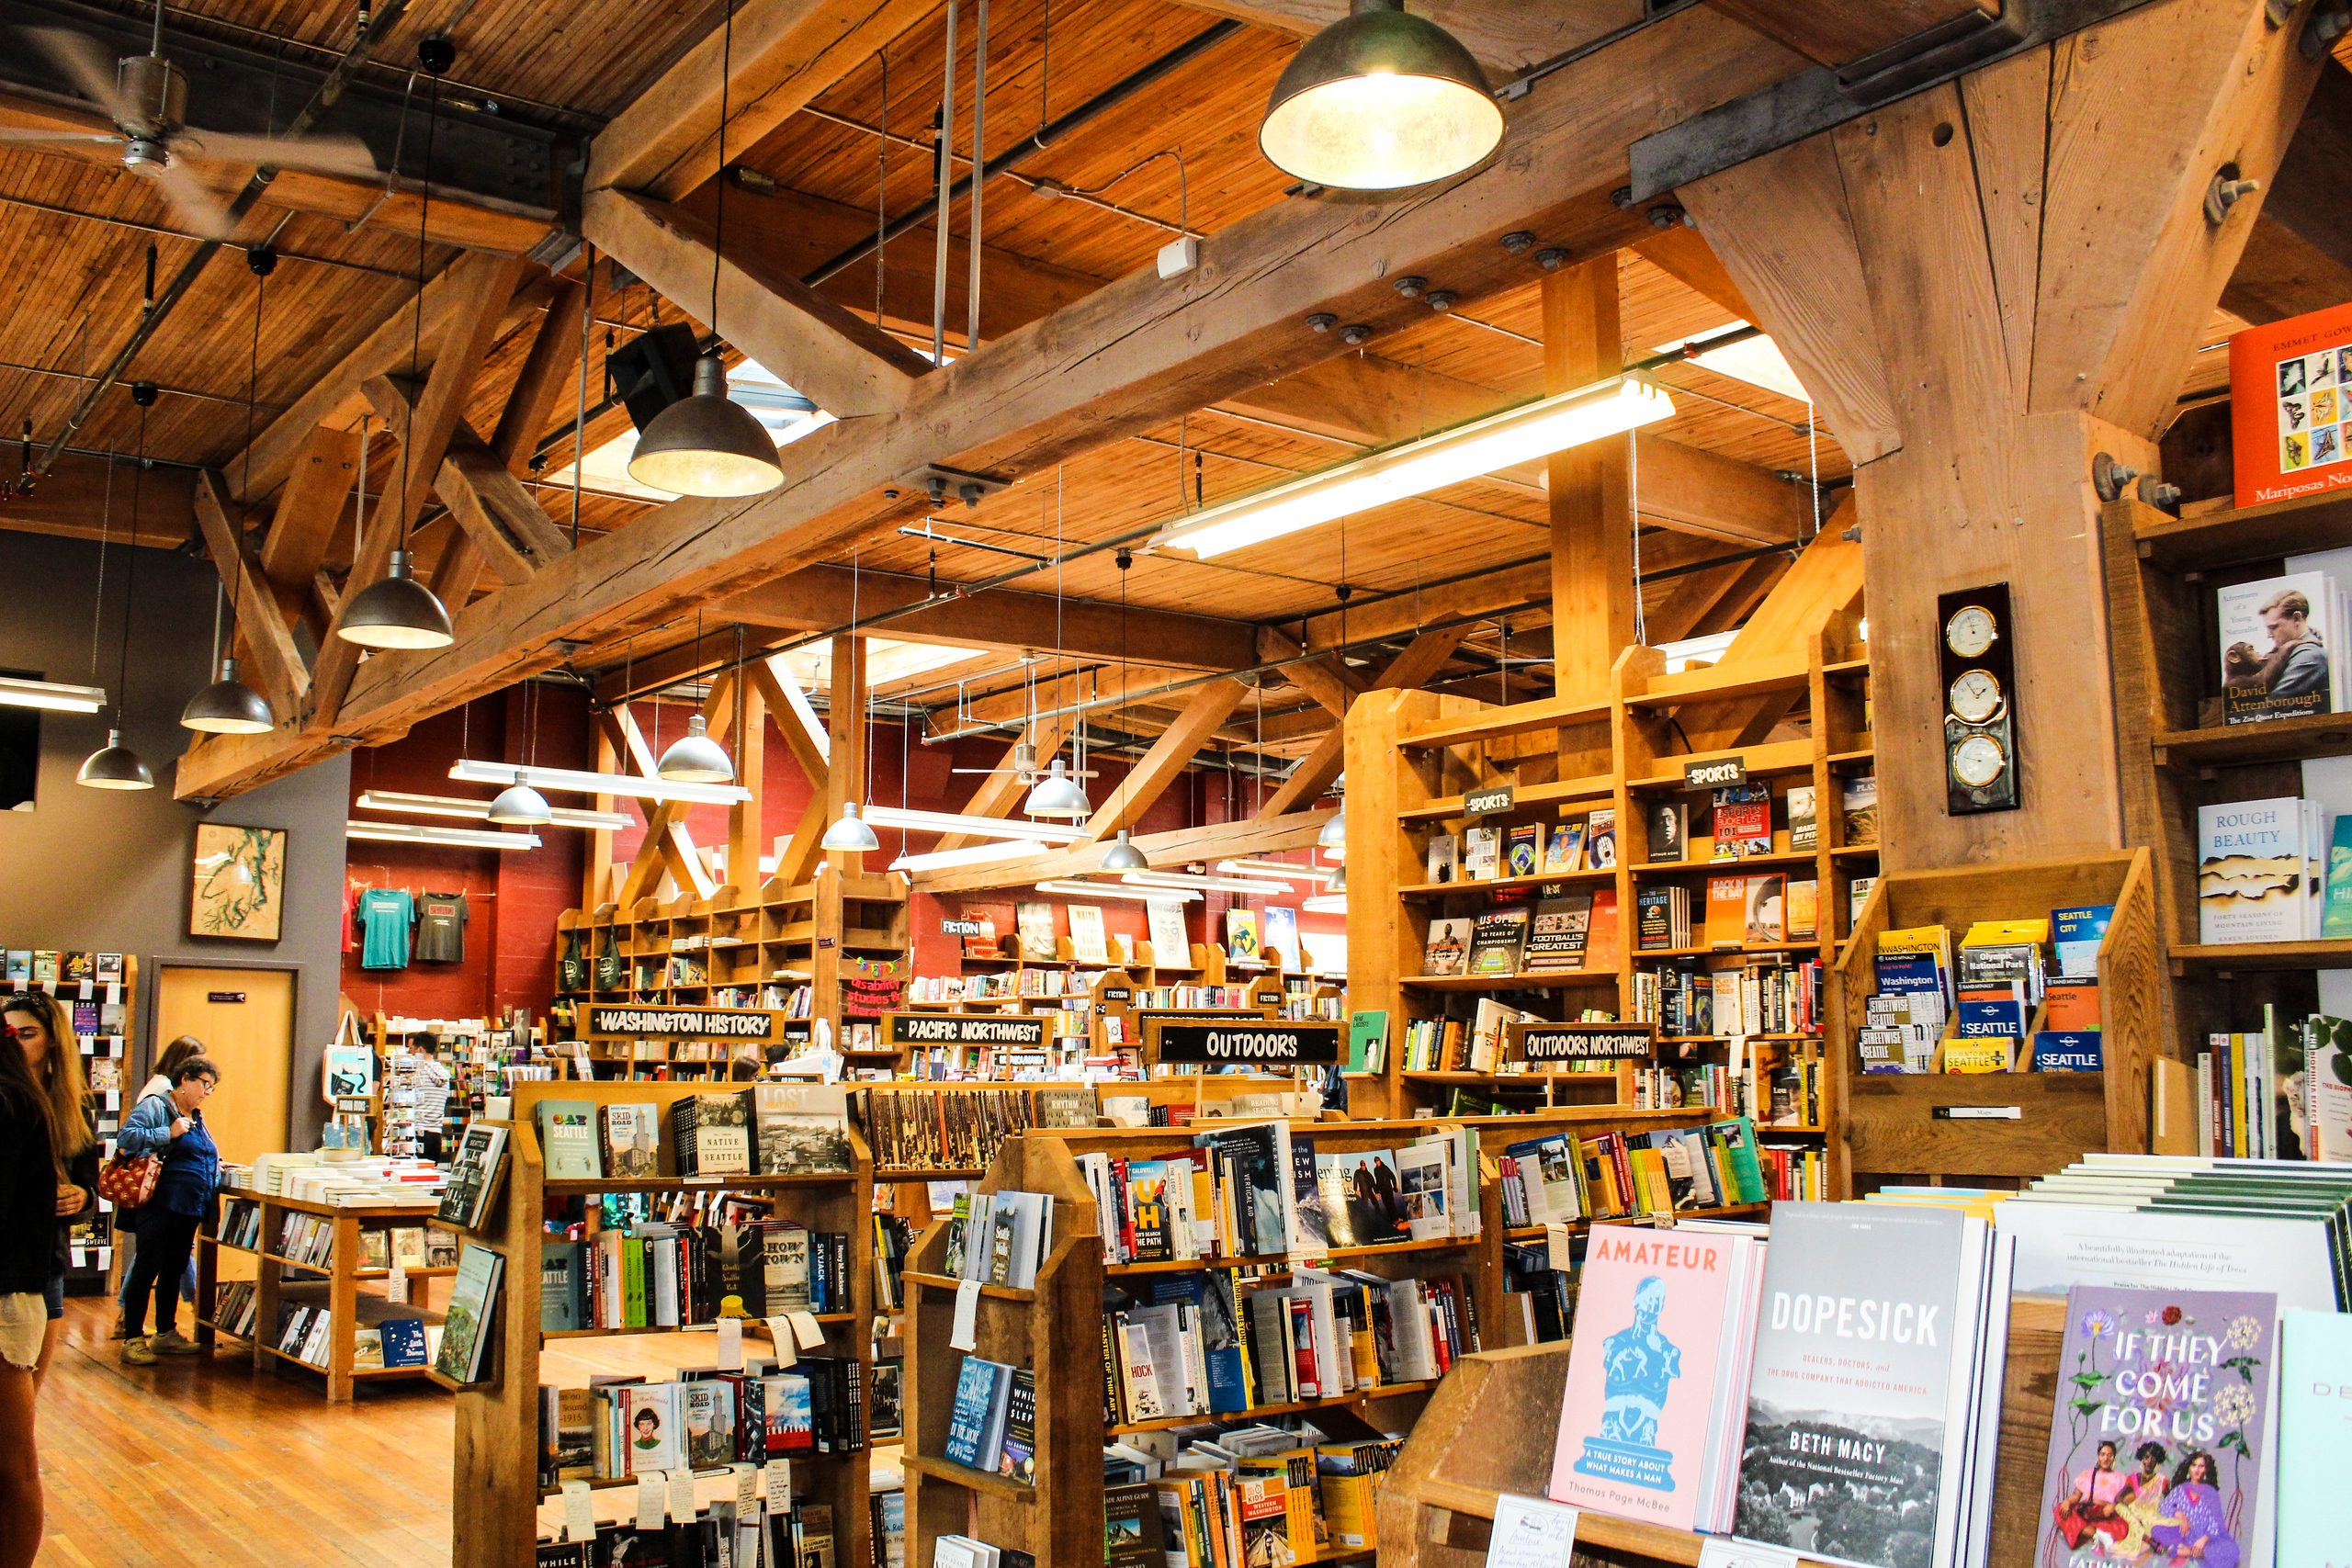 find the best books for building self esteem at your local bookstore